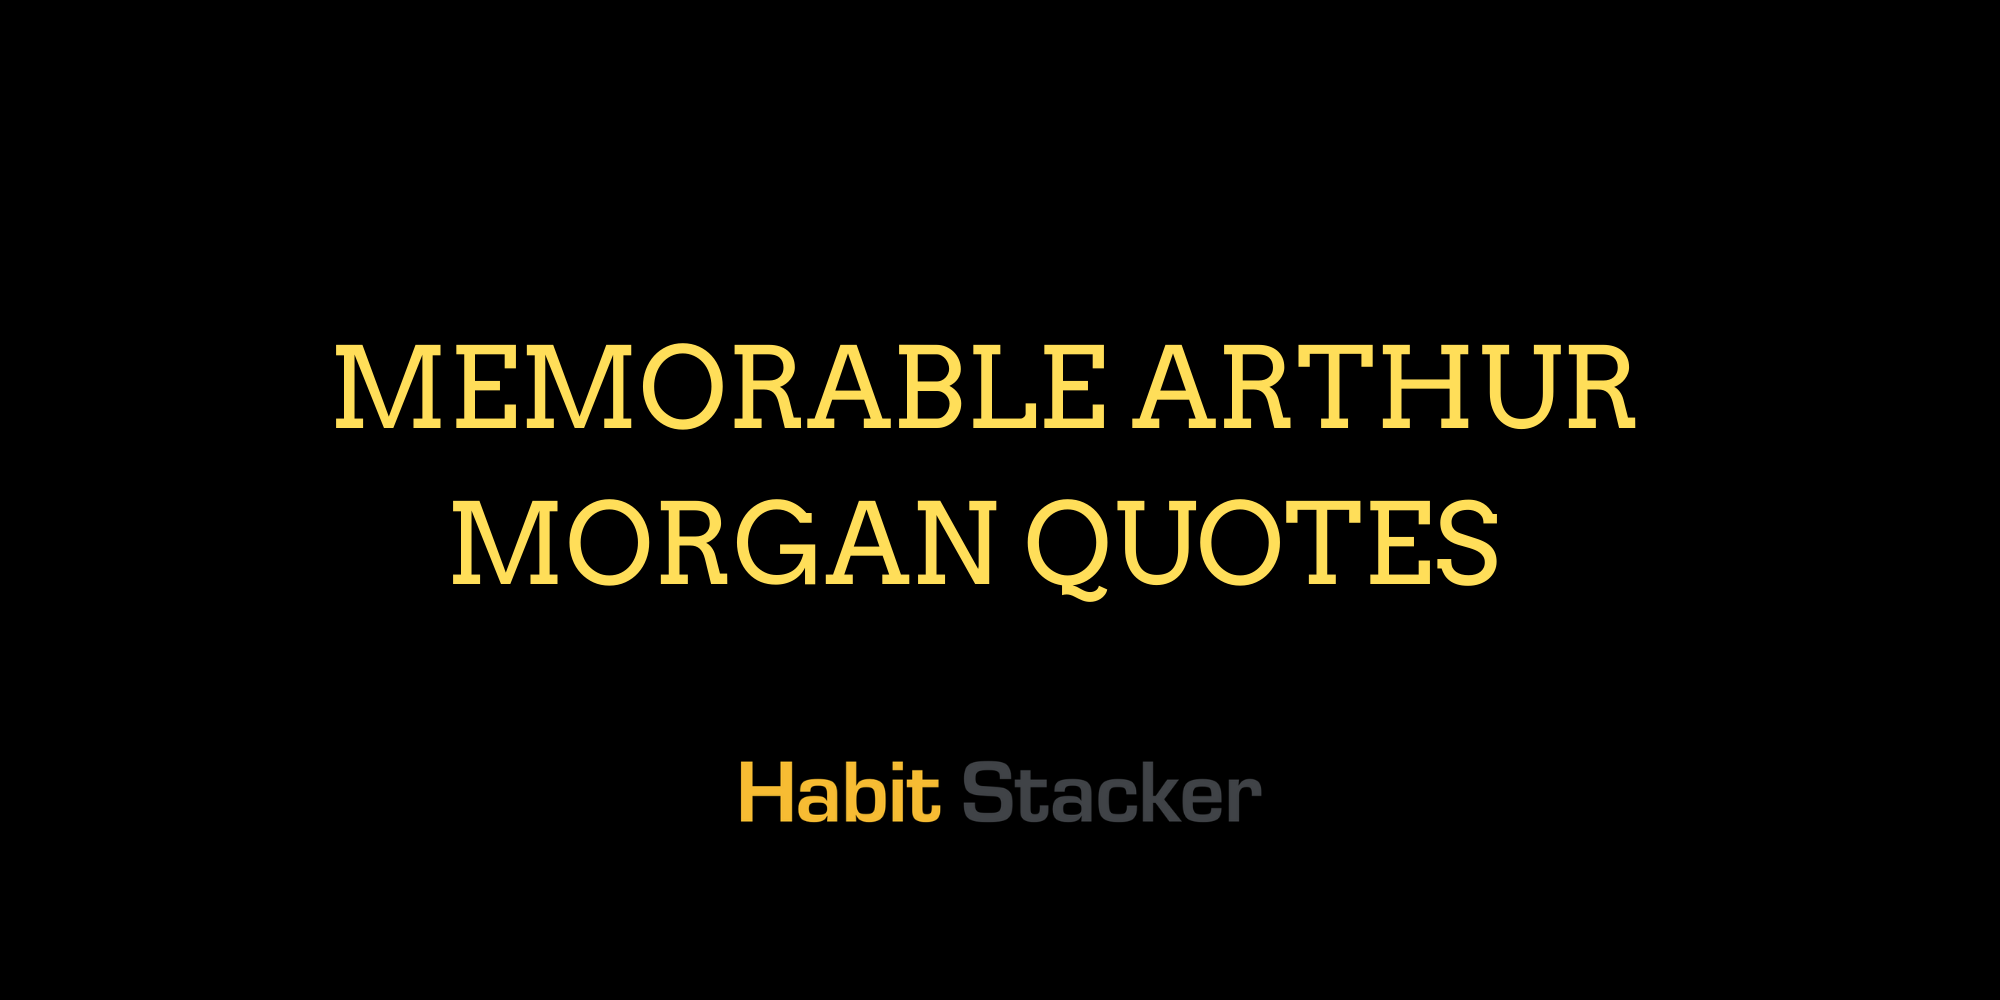 Memorable Arthur Morgan Quotes